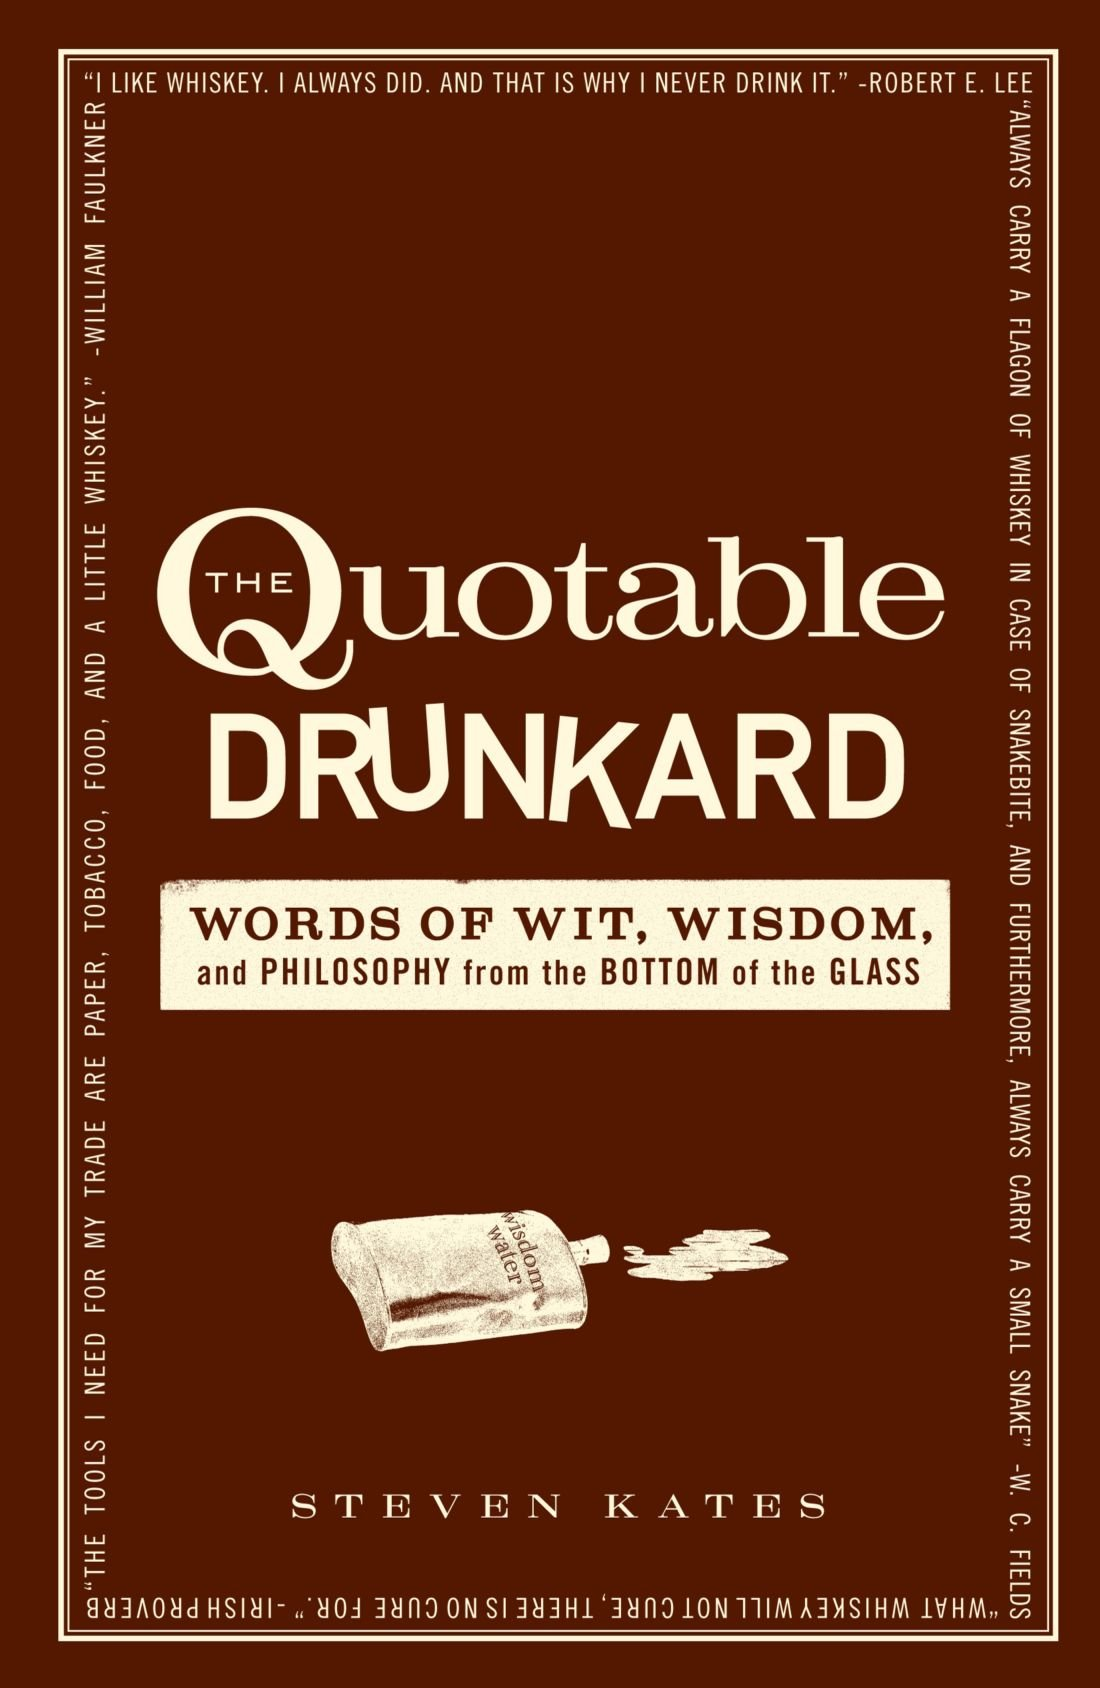 The Quotable Drunkard: Words of Wit, Wisdom, and Philosophy